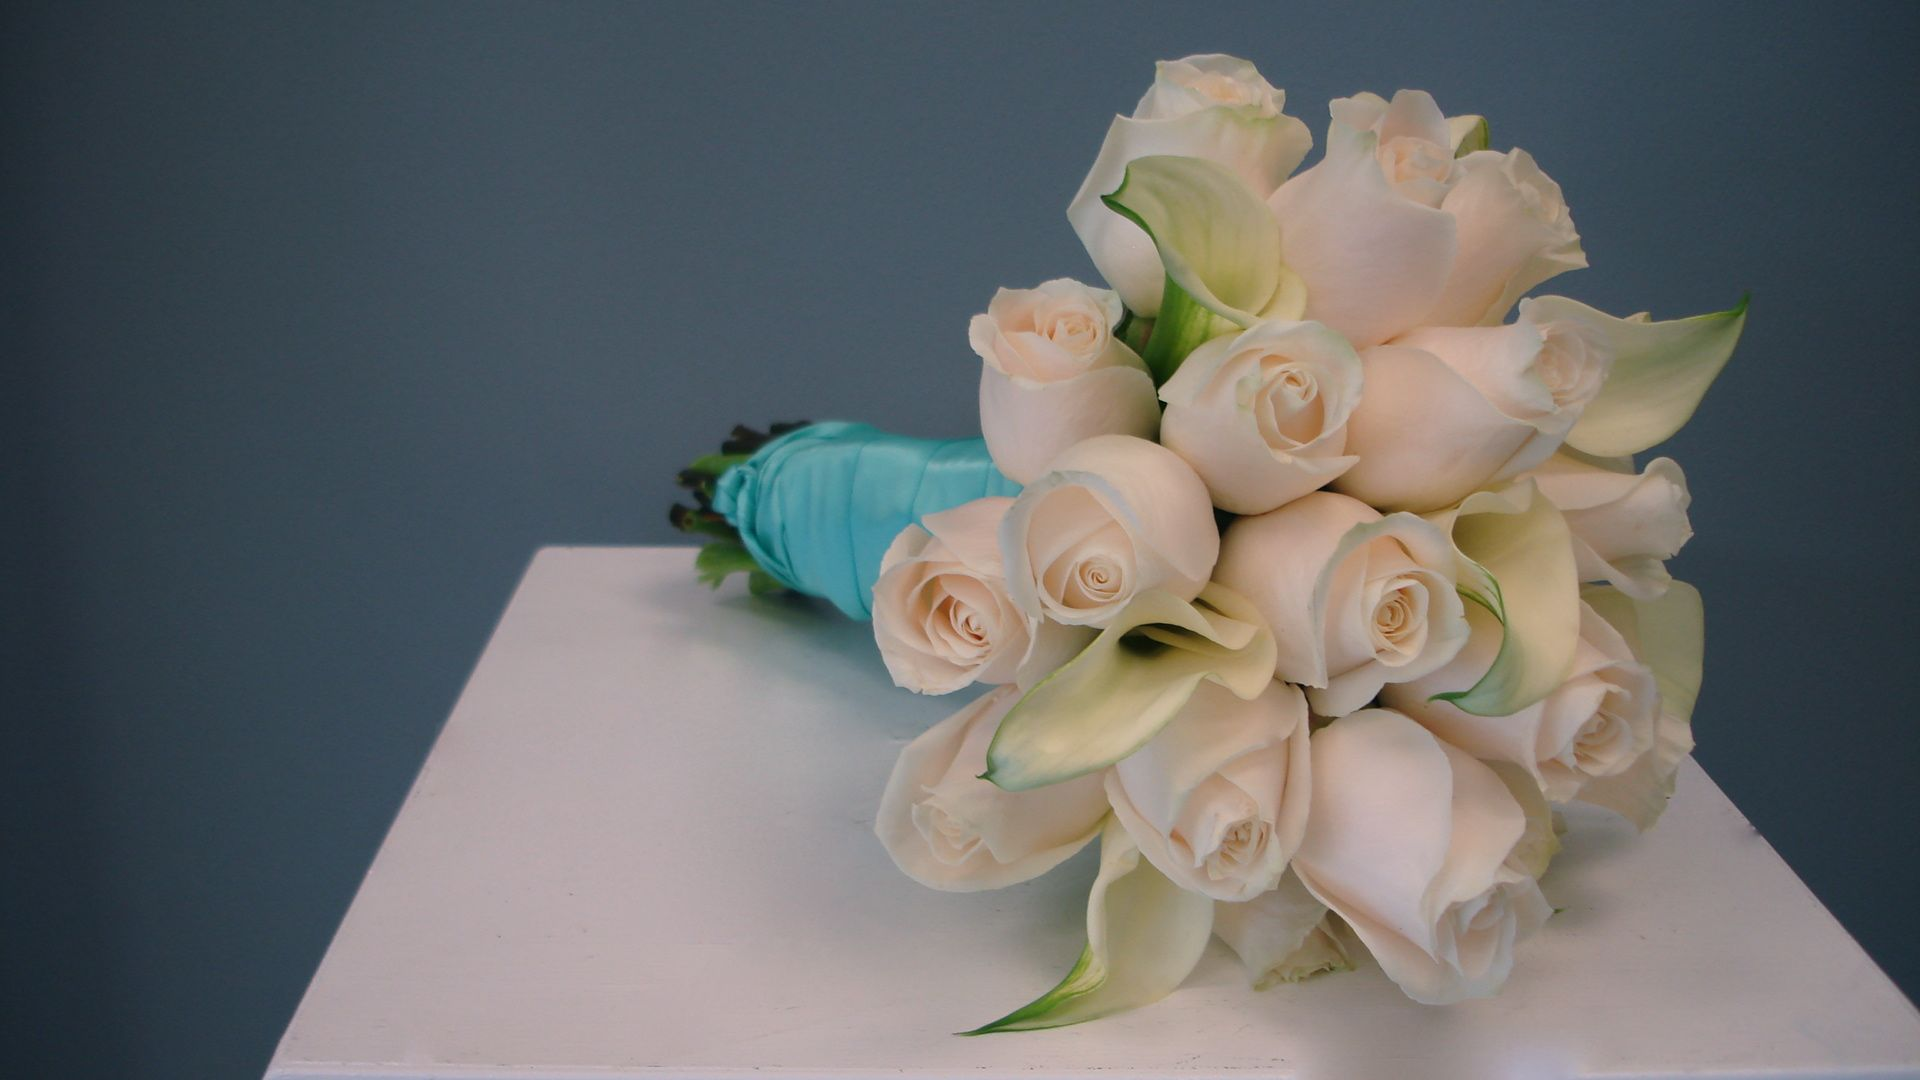 Roses calla lily bridal bouquet flowers of the field las vegas roses calla lily bridal bouquet izmirmasajfo